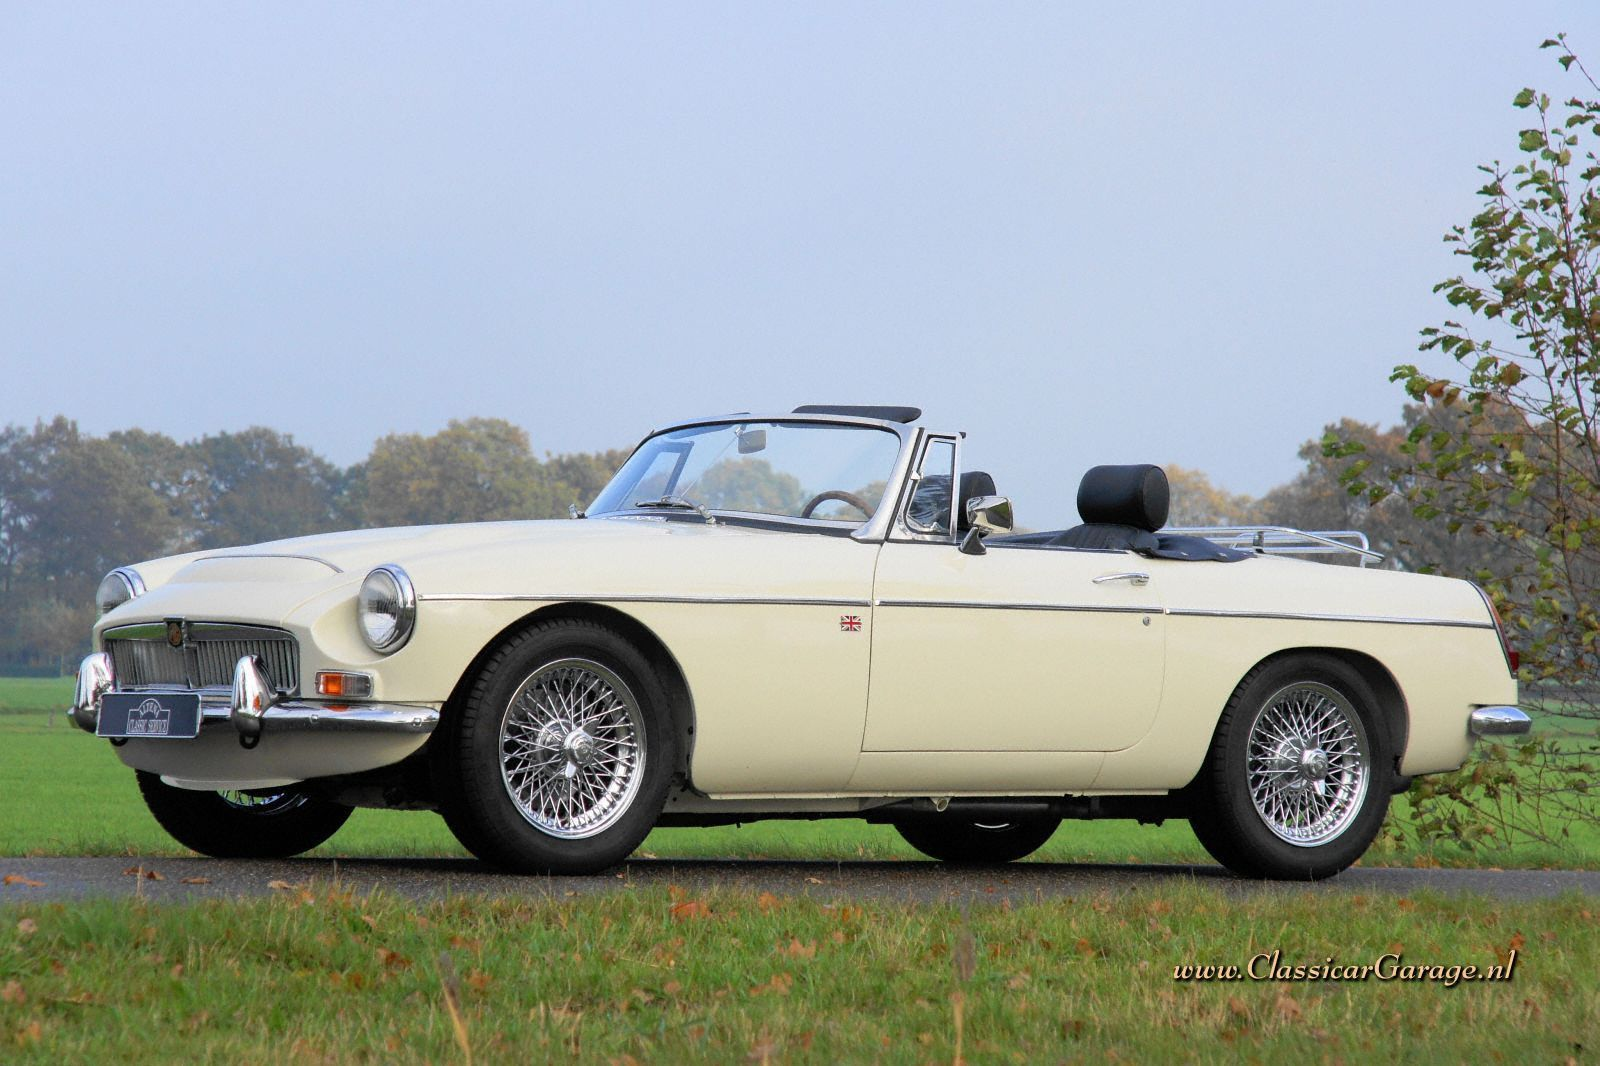 1957 Cars Restored Or Wallpapers Mg Mgc Roadster Mg Pinterest Cars British Car And